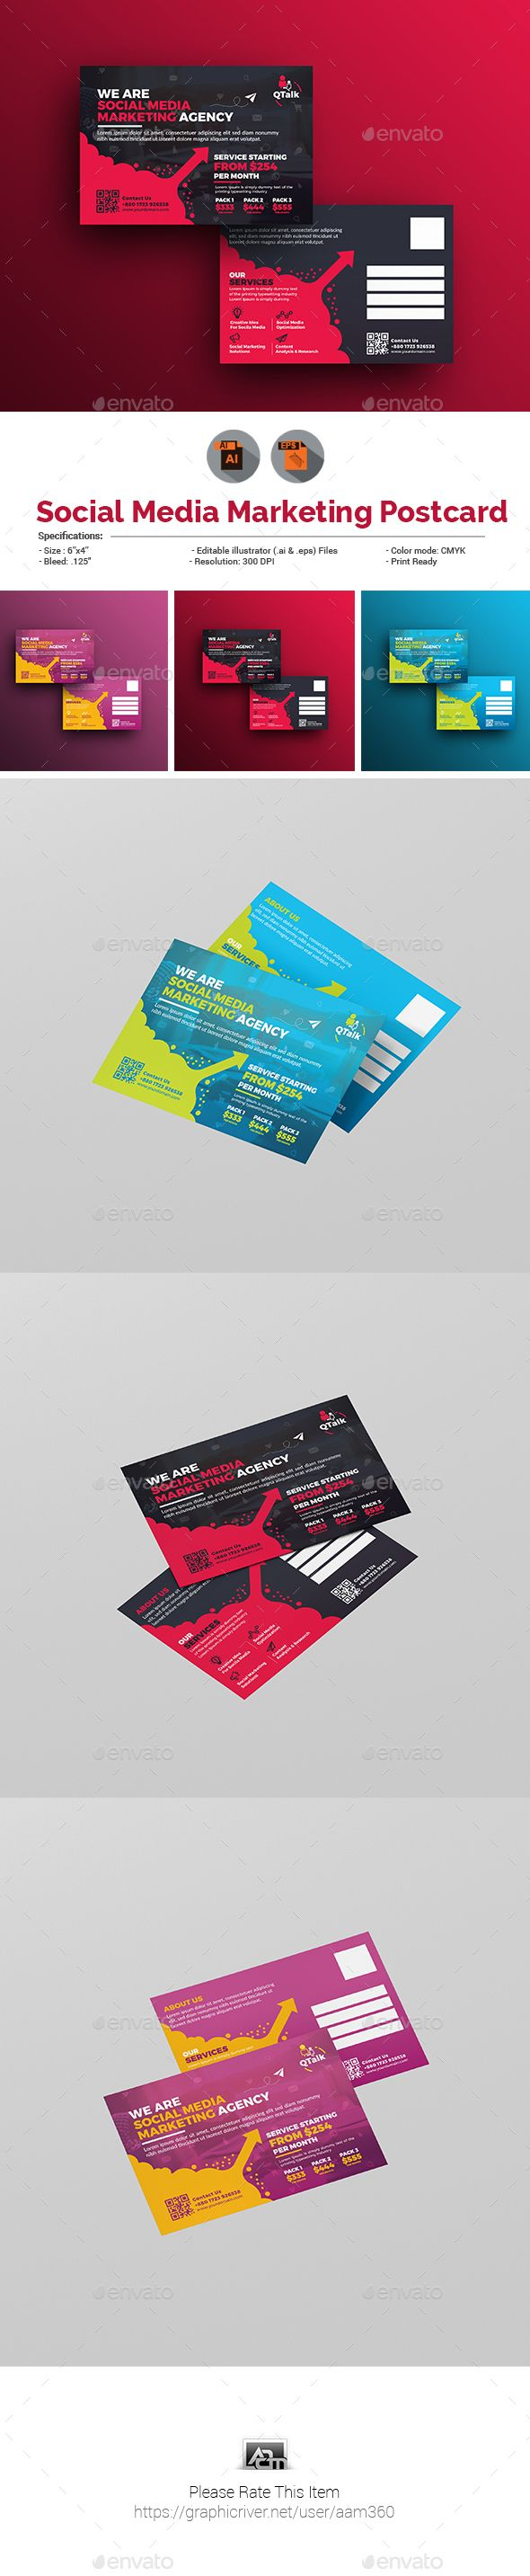 Social Media Marketing Postcard | Print templates, Postcard template ...